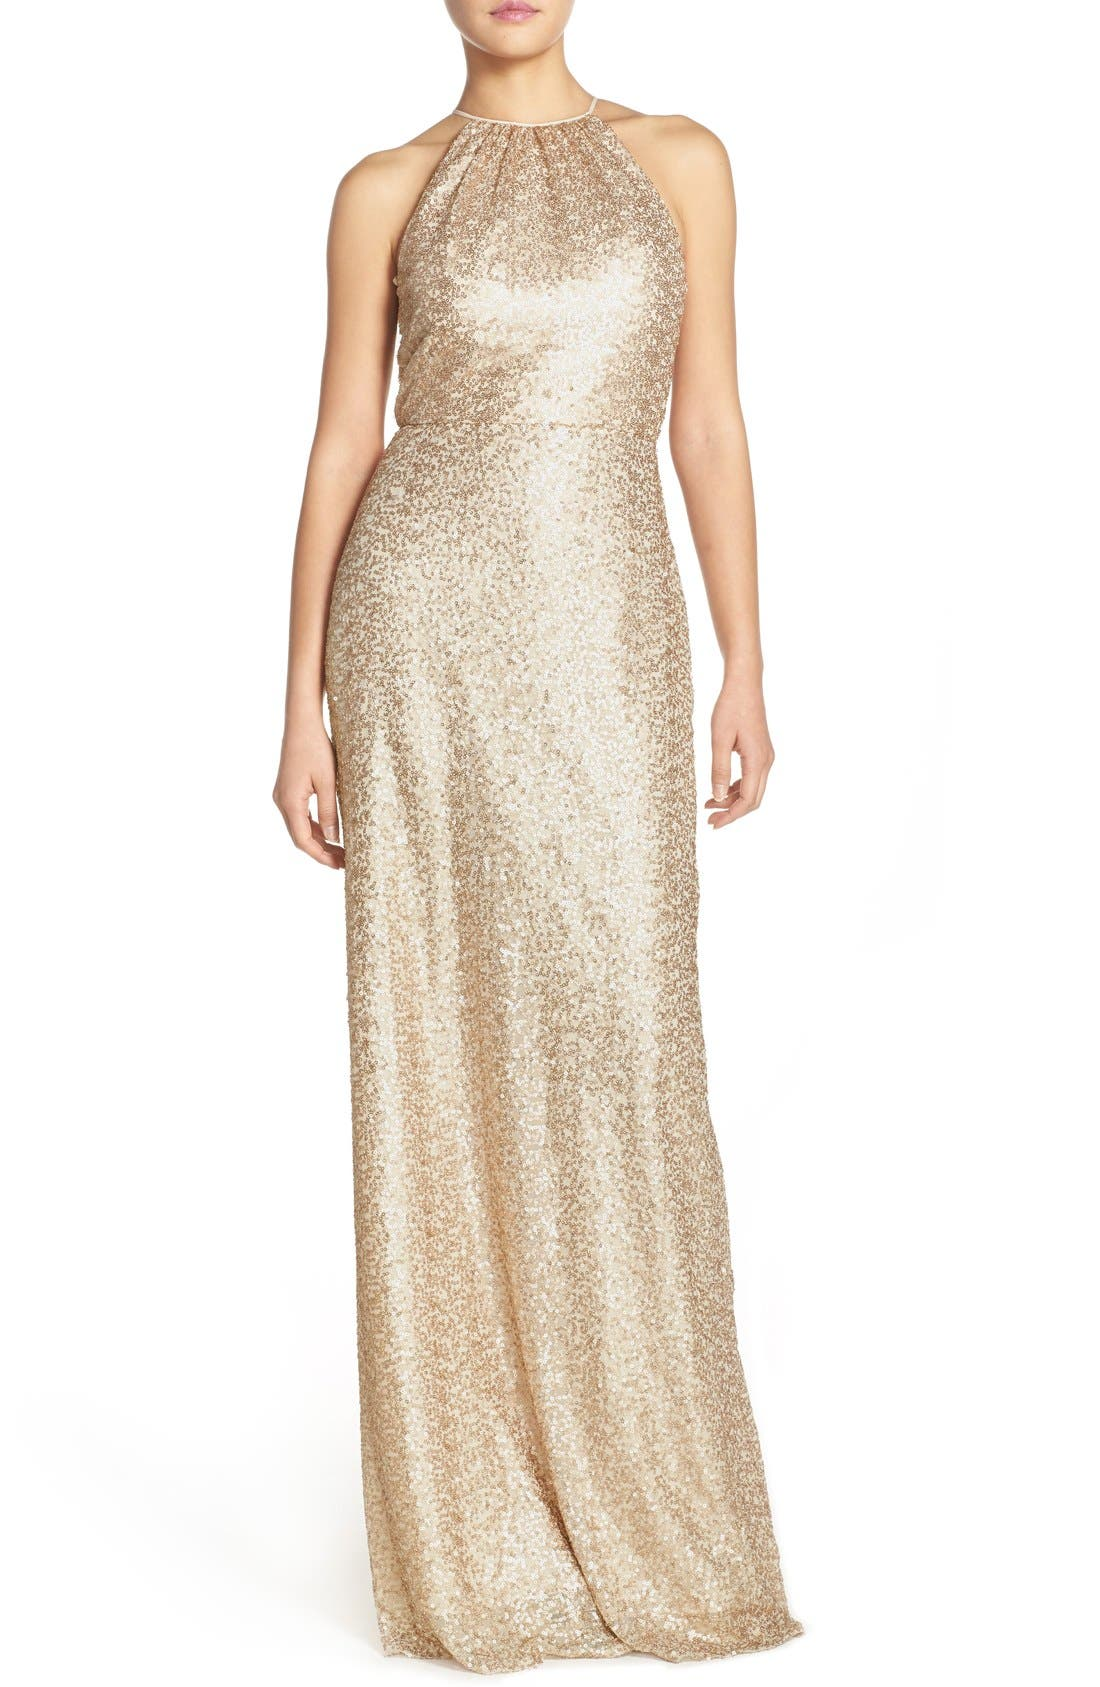 Alternate Image 1 Selected - Amsale 'Chandler' Sequin Tulle Halter Style Gown